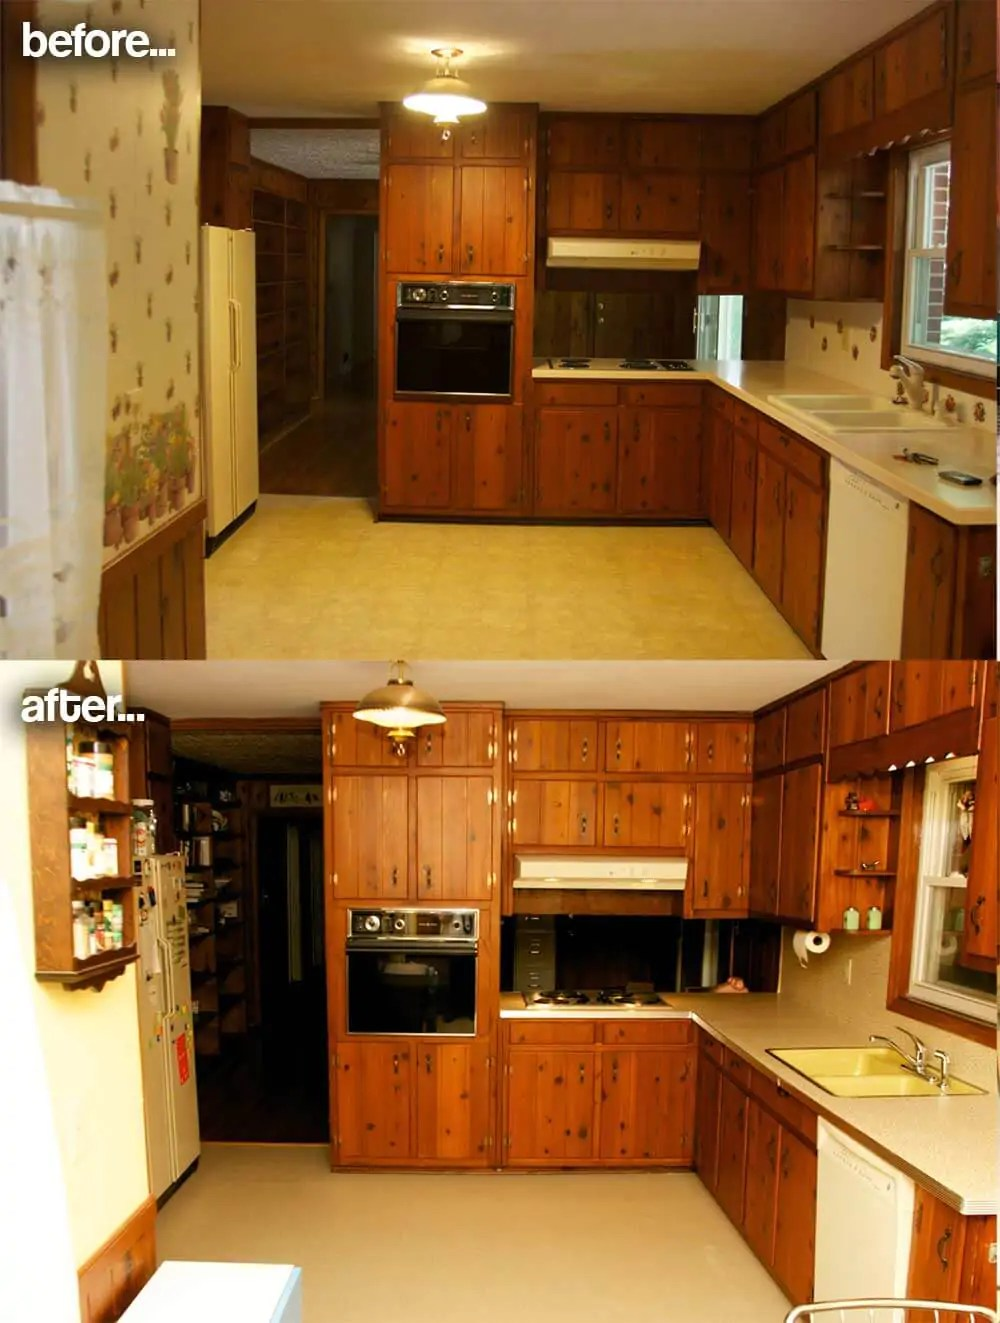 Whitewashed Knotty Pine Kitchen Cabinets | Review Home Decor